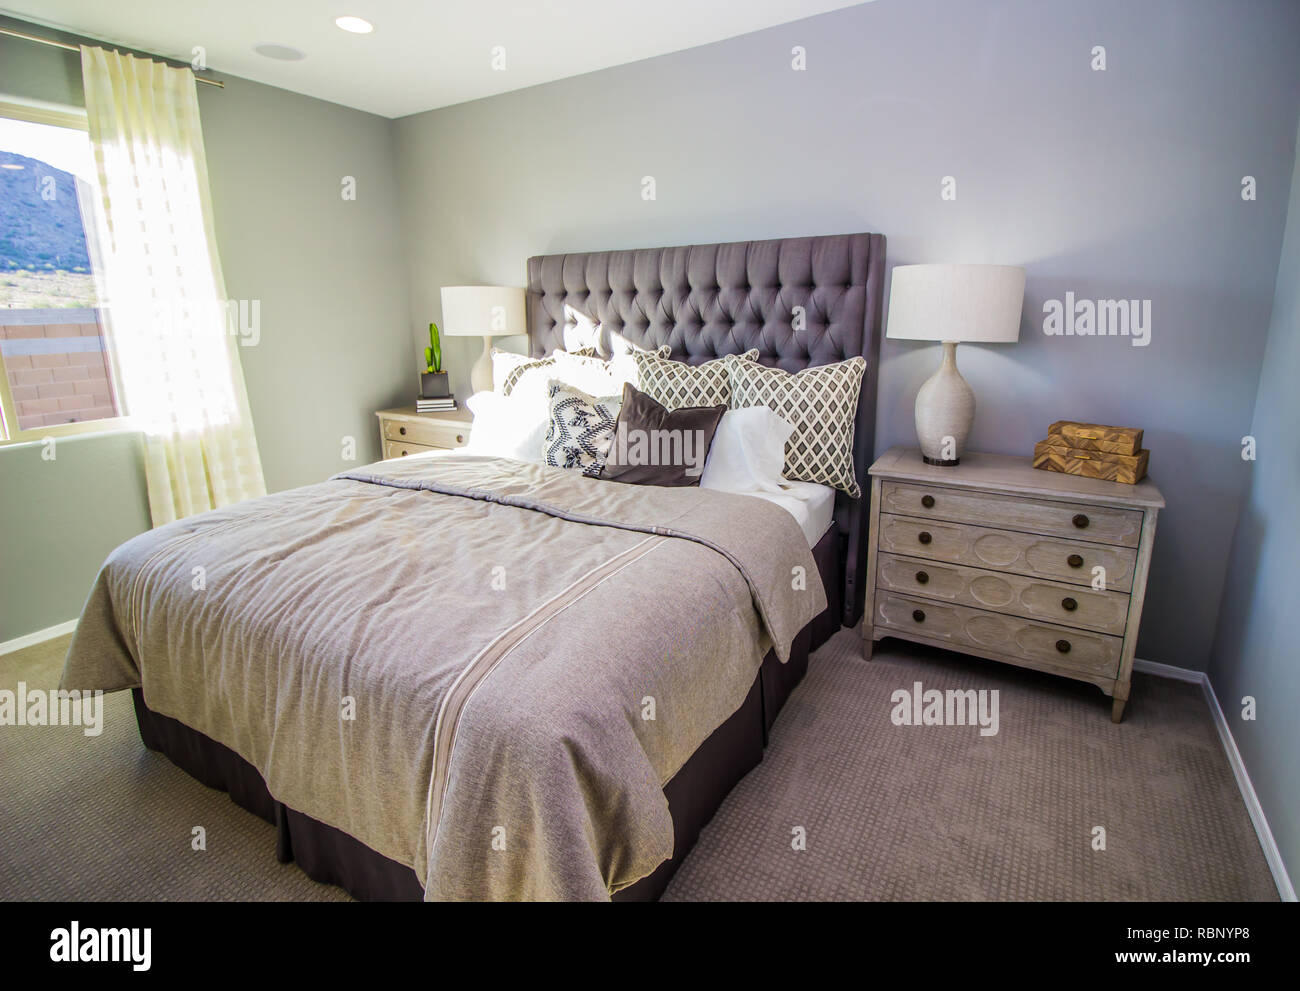 Modern Master Bedroom With Bed Lamps And Nightstands Stock Photo Alamy